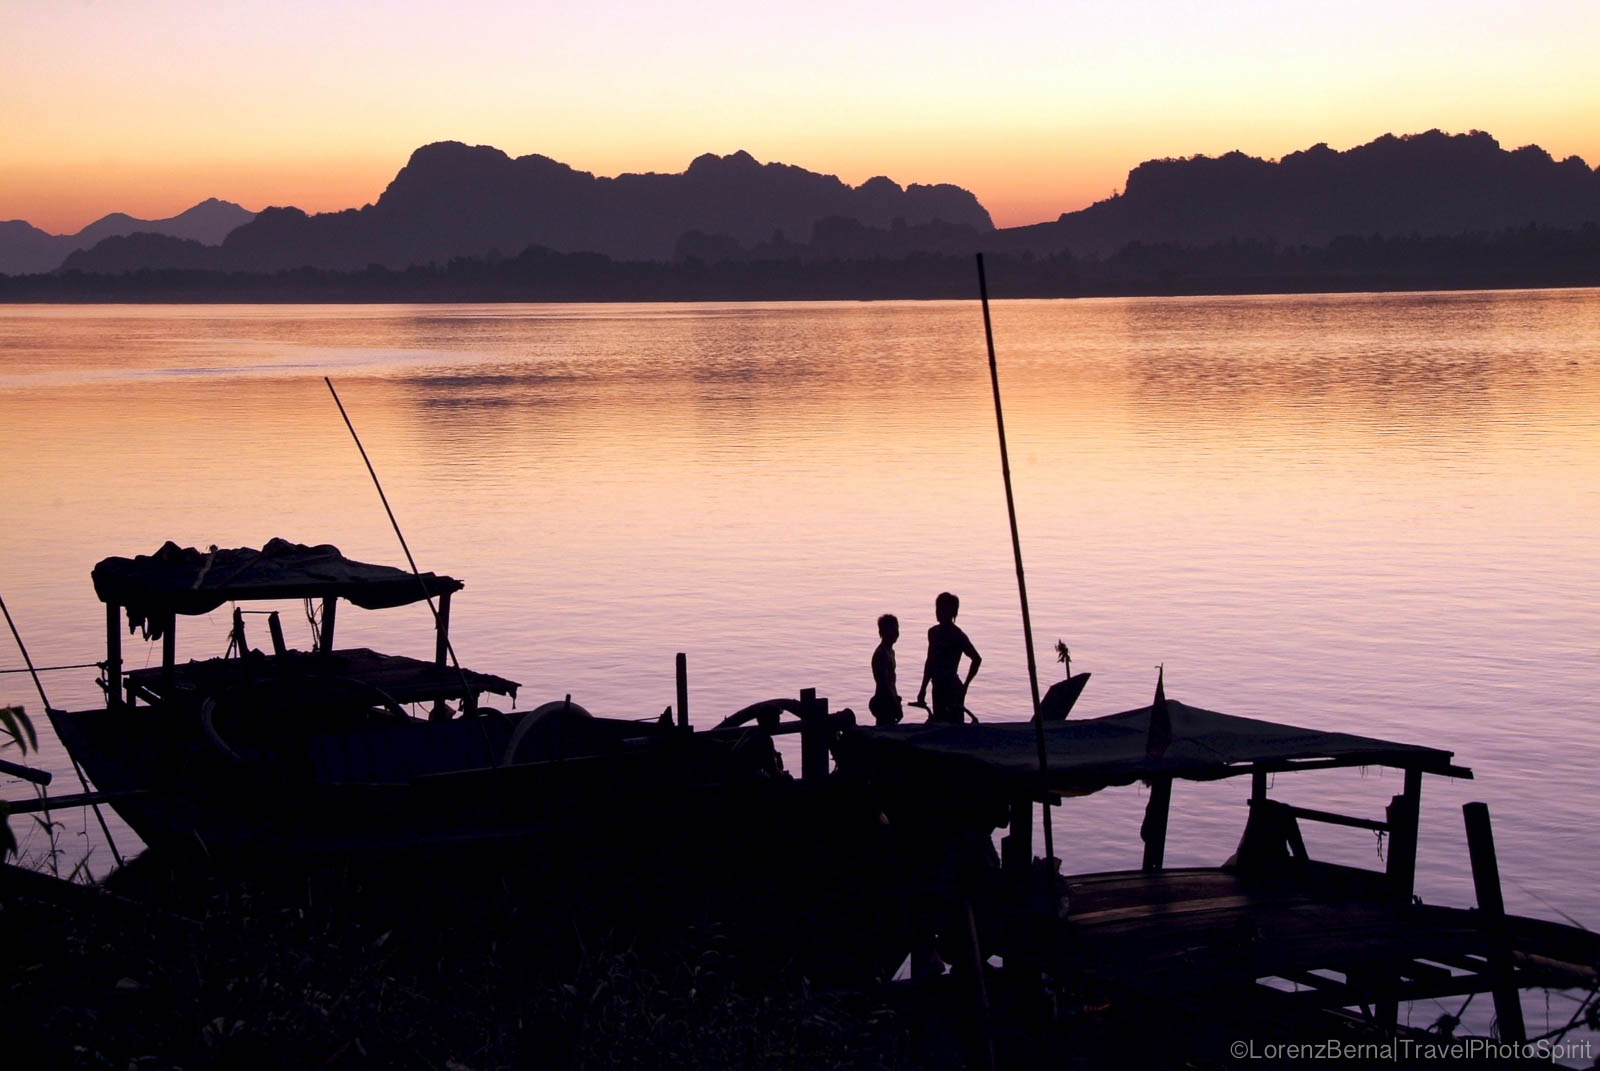 Sunset on the river of Hpa An, in the Karen state, Myanmar